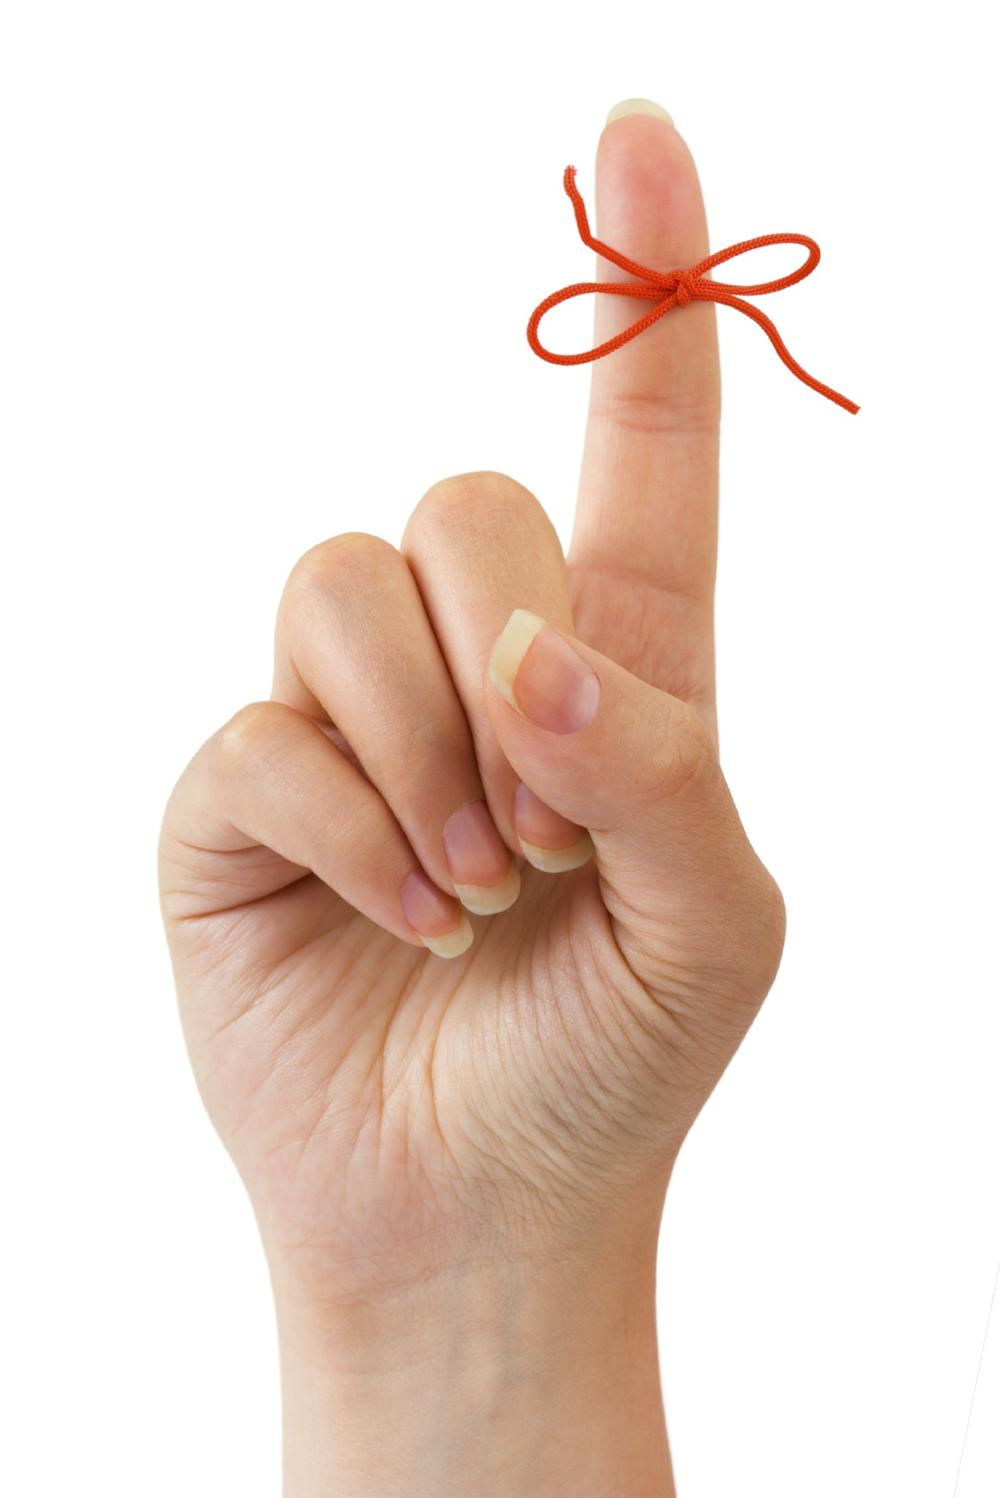 finger-with-string-istock 000007949668medium.jpg